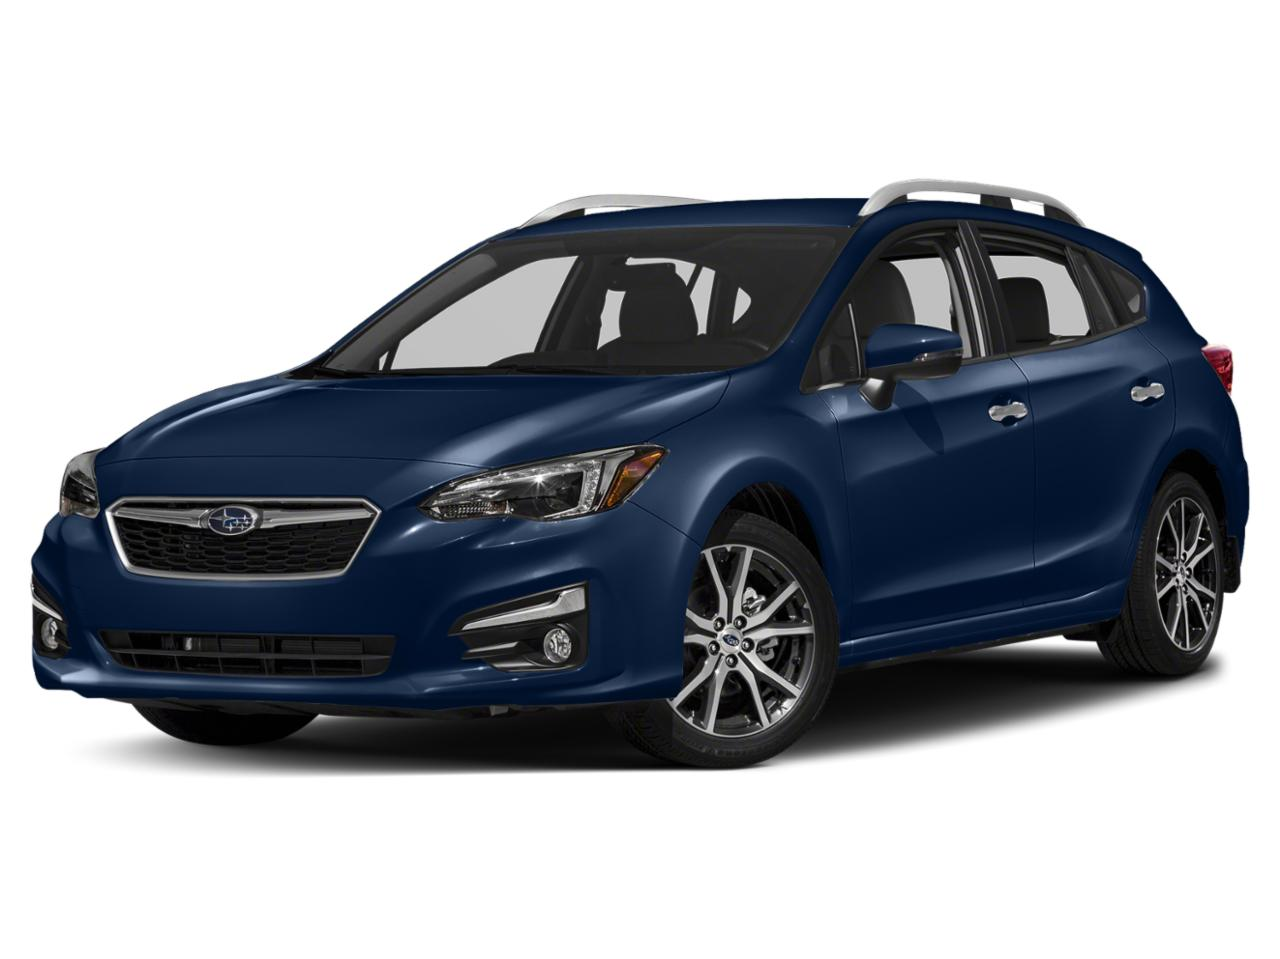 Used Subaru Impreza New London Ct